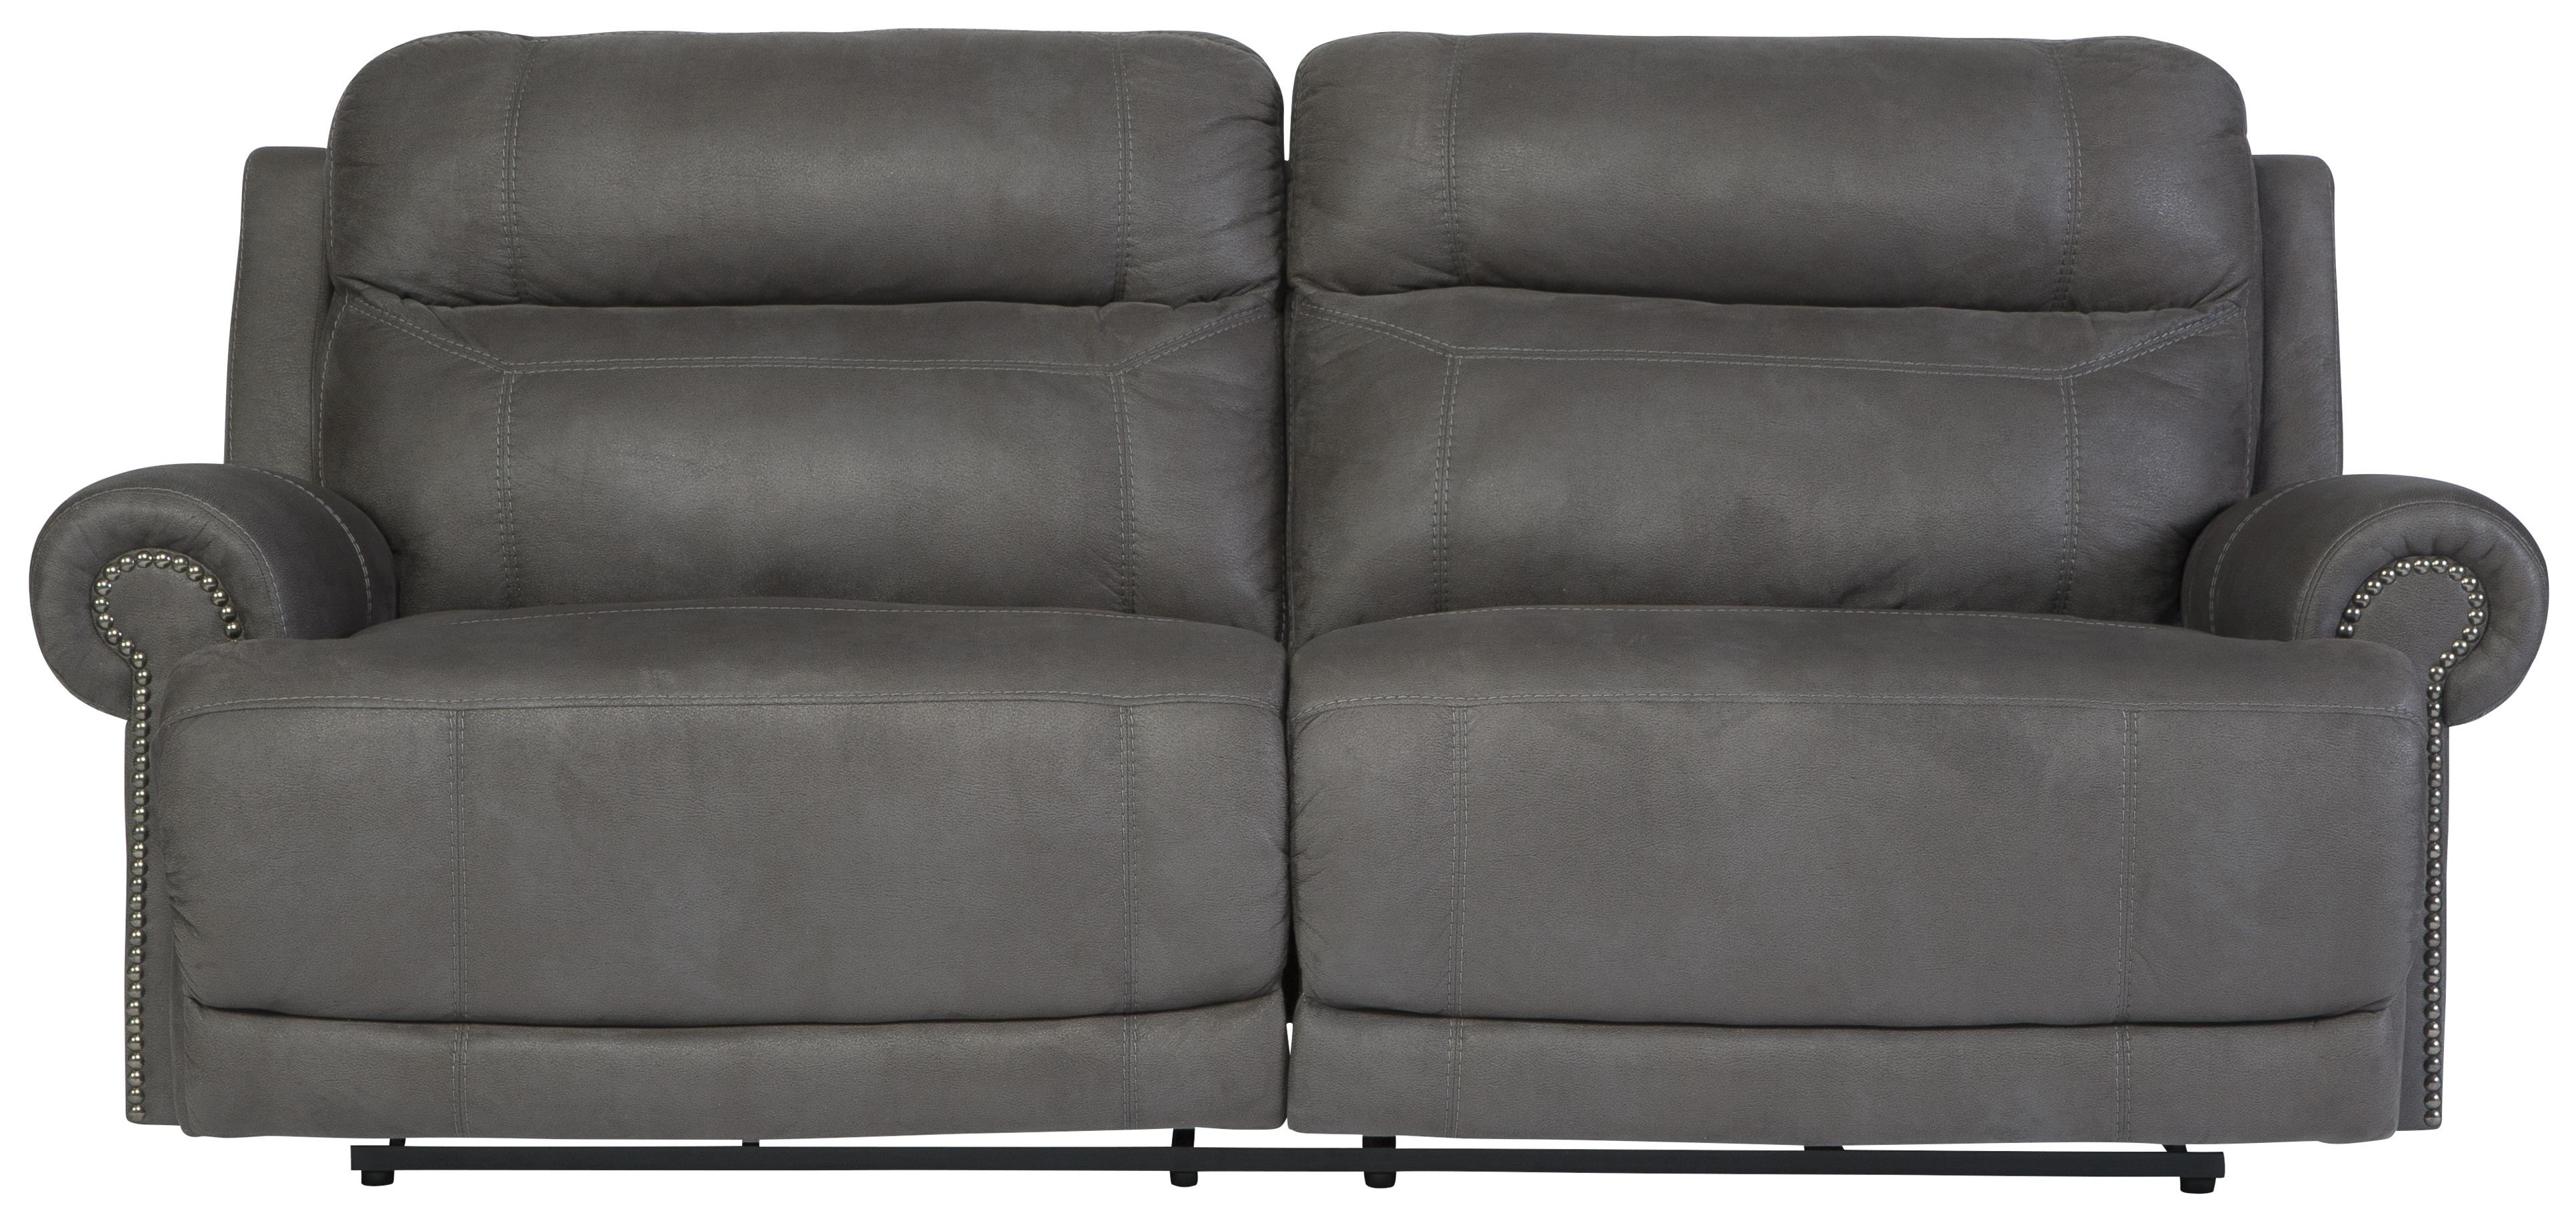 Signature Design by Ashley Austere - Gray 2 Seat Reclining Sofa - Item Number 3840181  sc 1 st  Wayside Furniture & Signature Design by Ashley Austere - Gray 2 Seat Reclining Sofa ... islam-shia.org